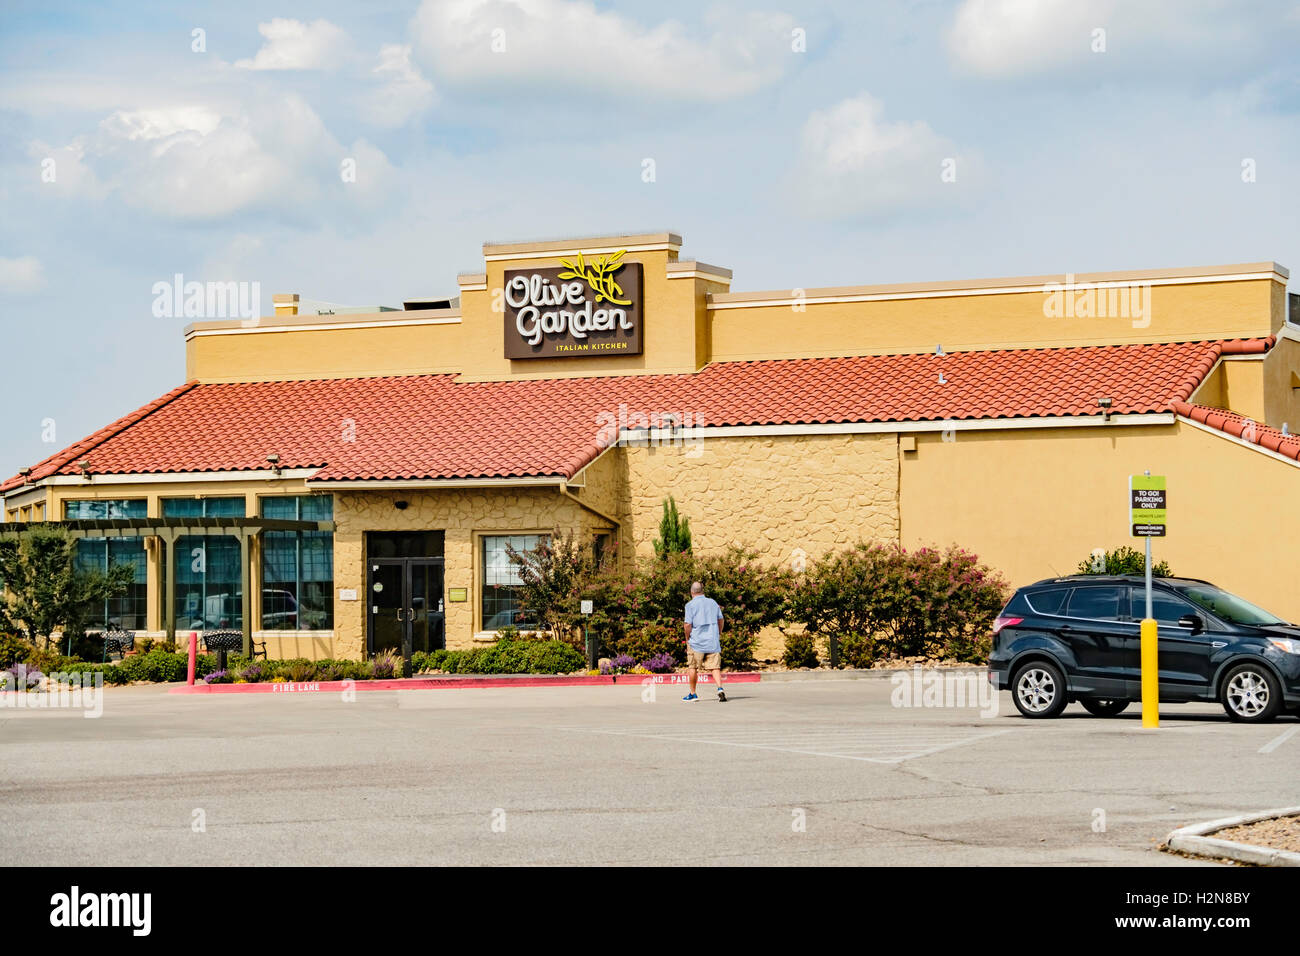 the exterior of an olive garden restaurant located at 2321 i 240 service road - Olive Garden Indianapolis